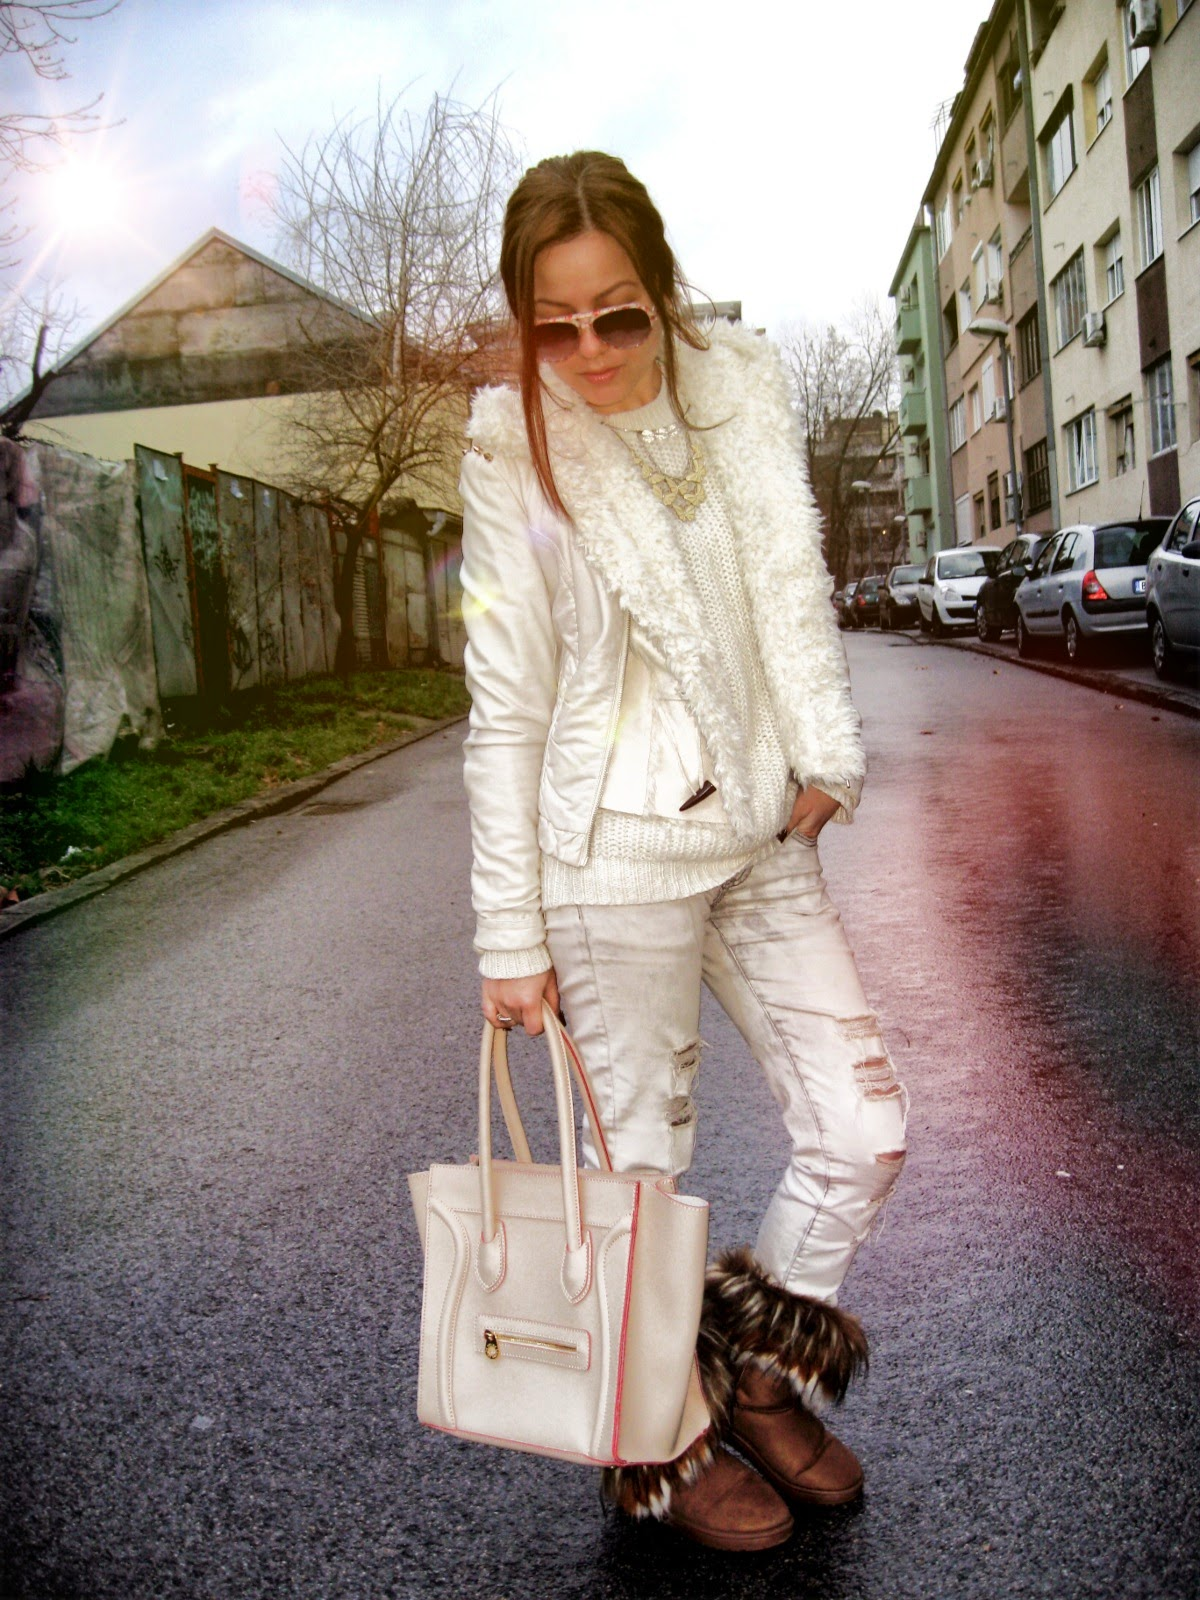 outfit, C&A white knit sweater, acid wash ripped jeans, fur boots, celine inspired knockoff beige boston tote bag, faux fur vest, white faux leather jacket, statement necklace